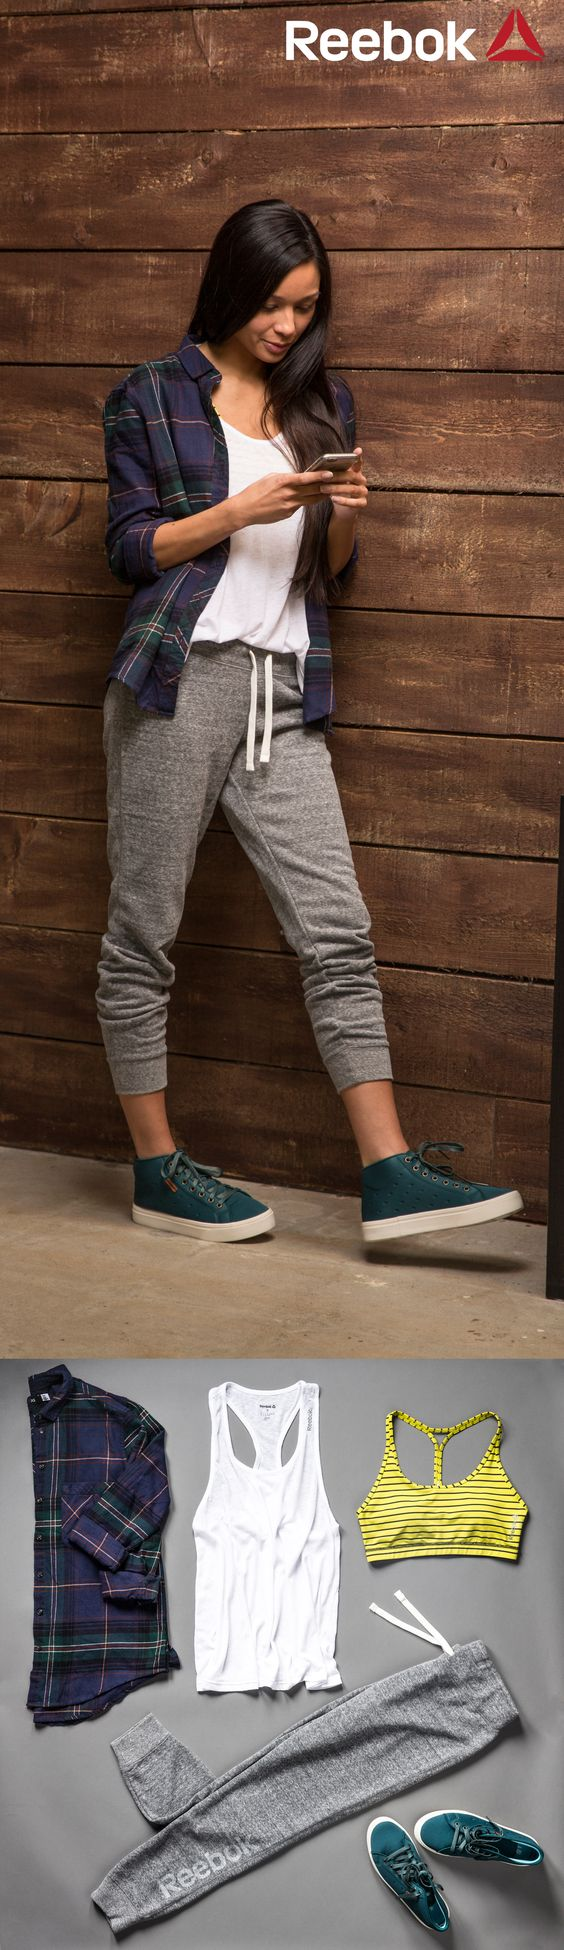 20 stylish way to using jogger pants that will make you seem more